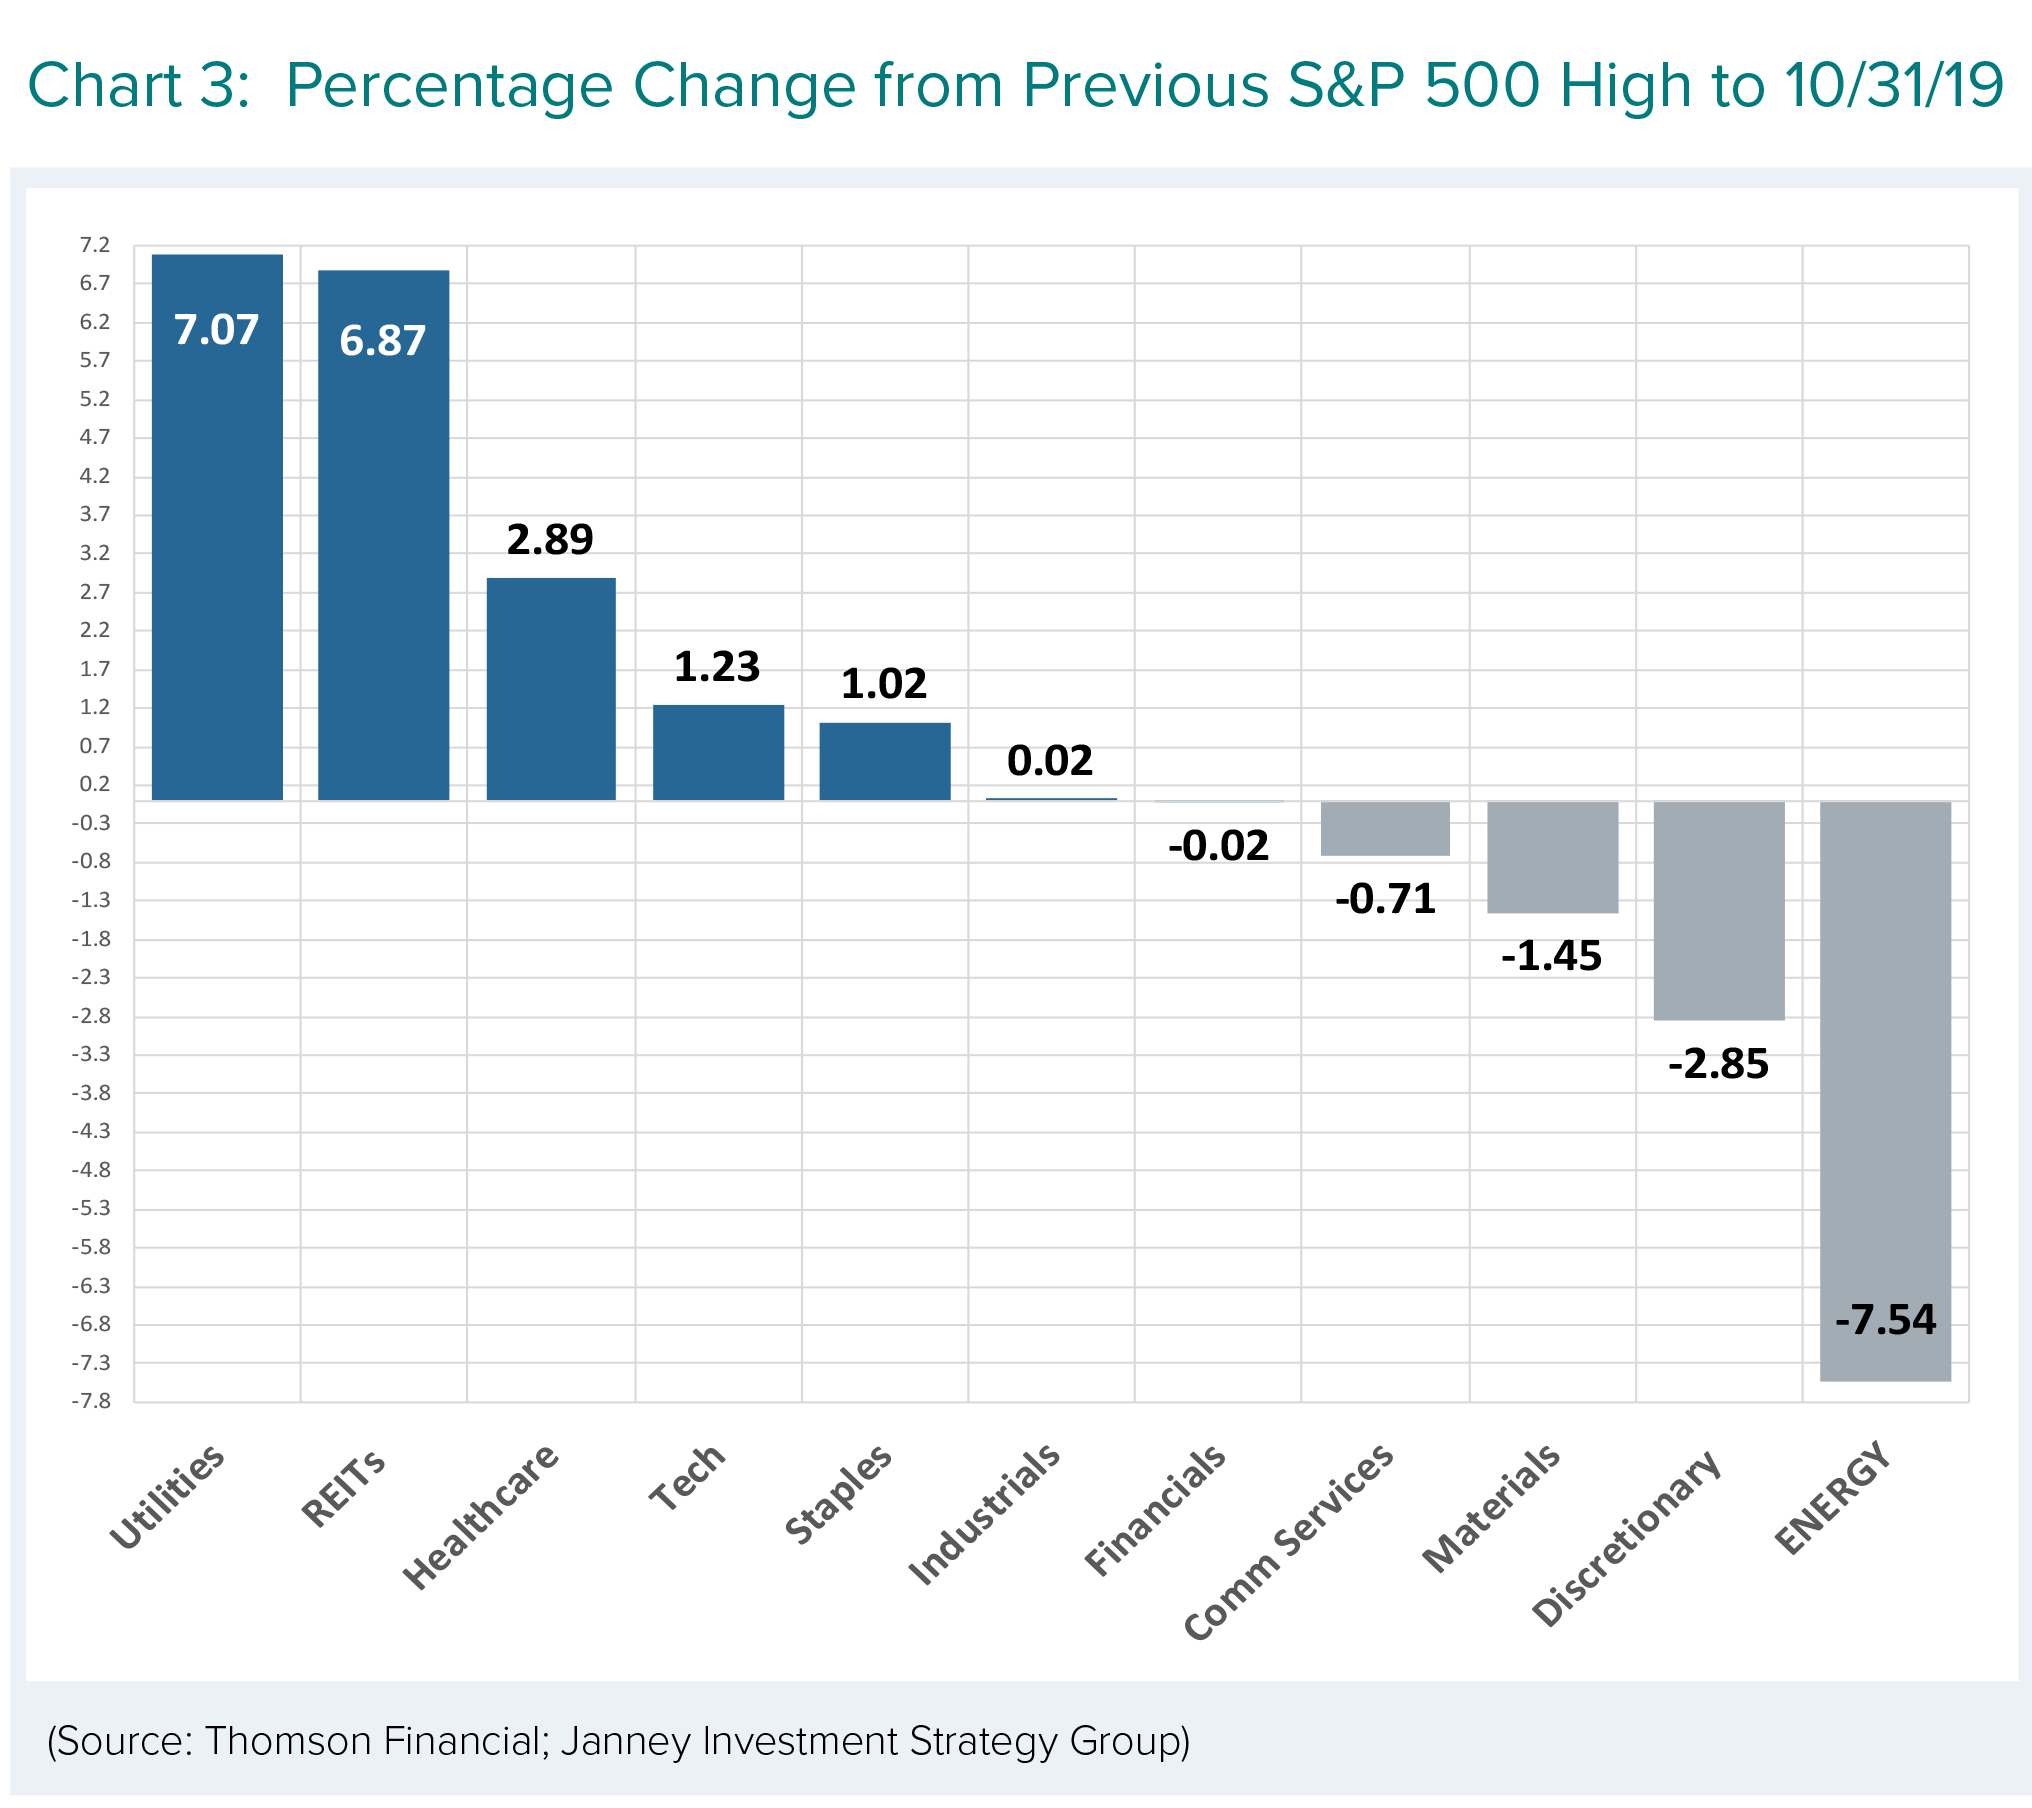 Percentage change from previous S&P 500 High to 10/31/19